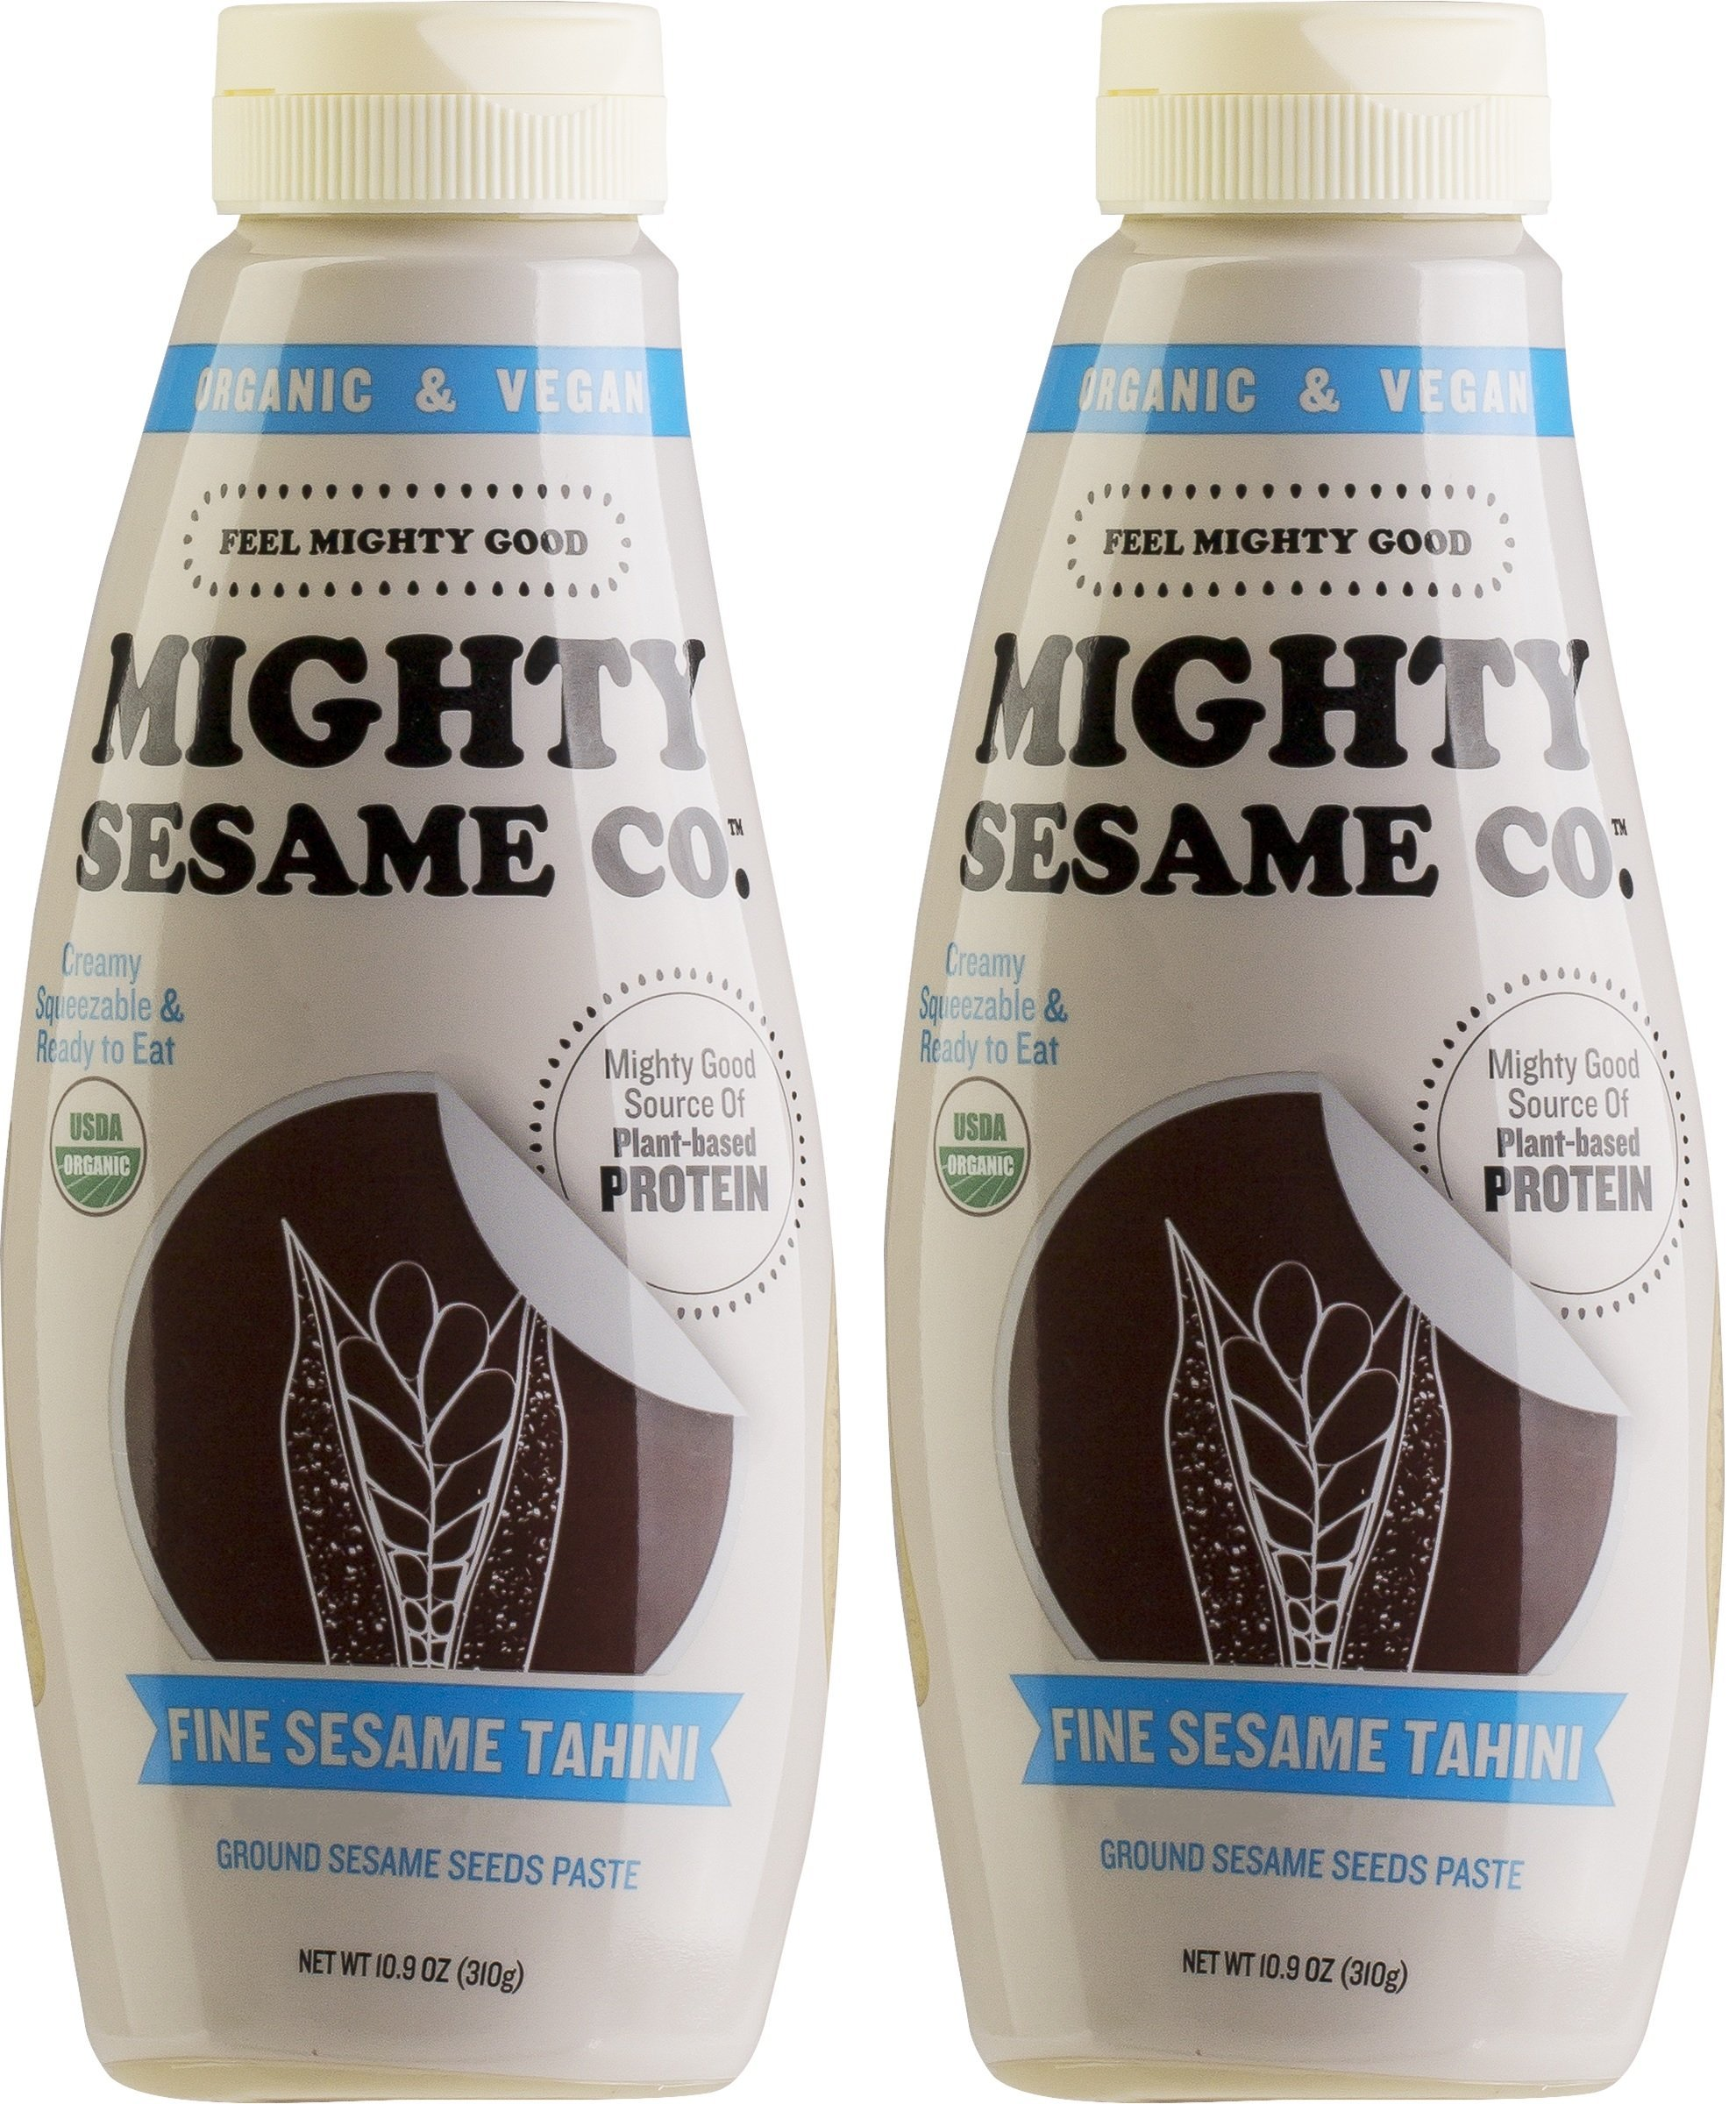 Mighty Sesame, Organic, Fine Sesame Tahini, 10.9oz, Squeezable Bottle, Gluten Free, Ready to use! (2 Pack)